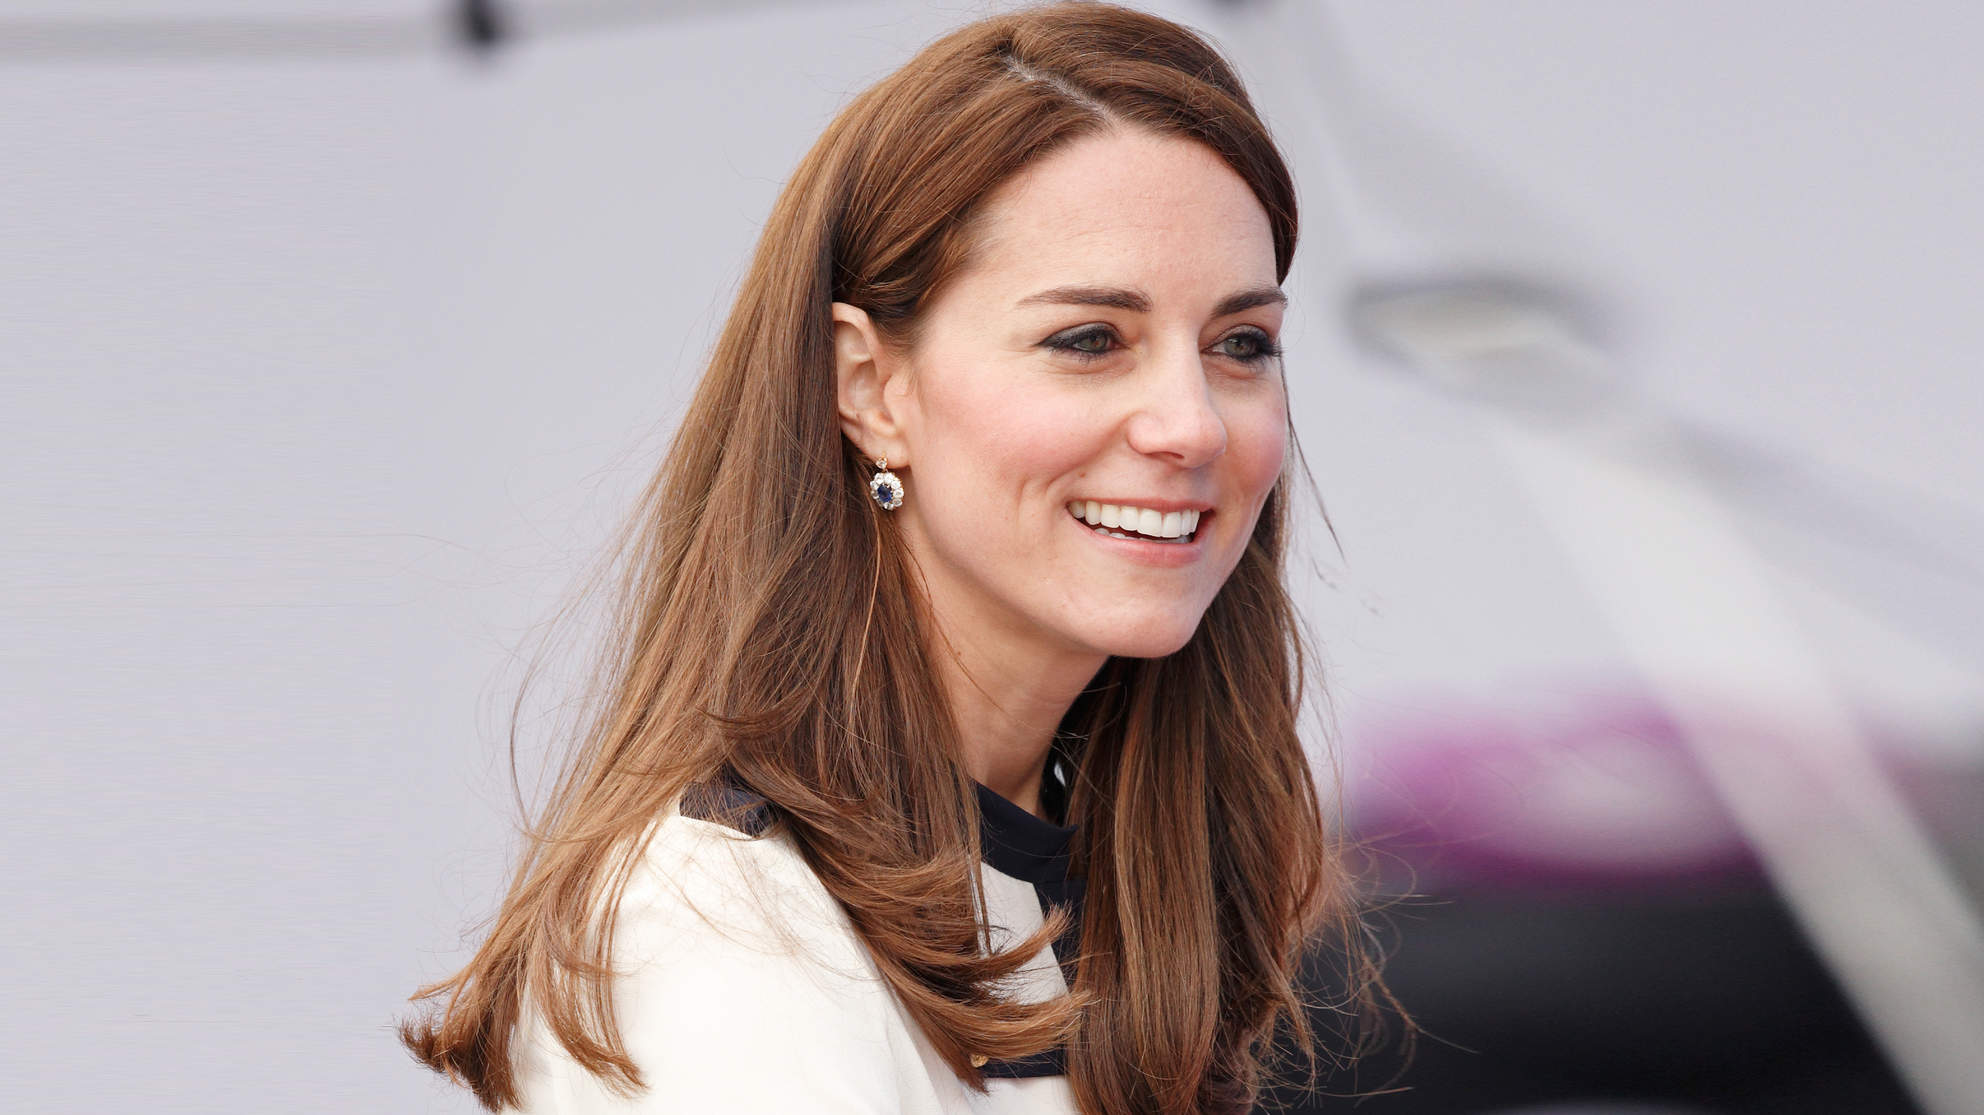 Mom of 3 Who Suffered Same Morning Sickness as Princess Kate Shares Her Survival Tips: 'It's Miserable'